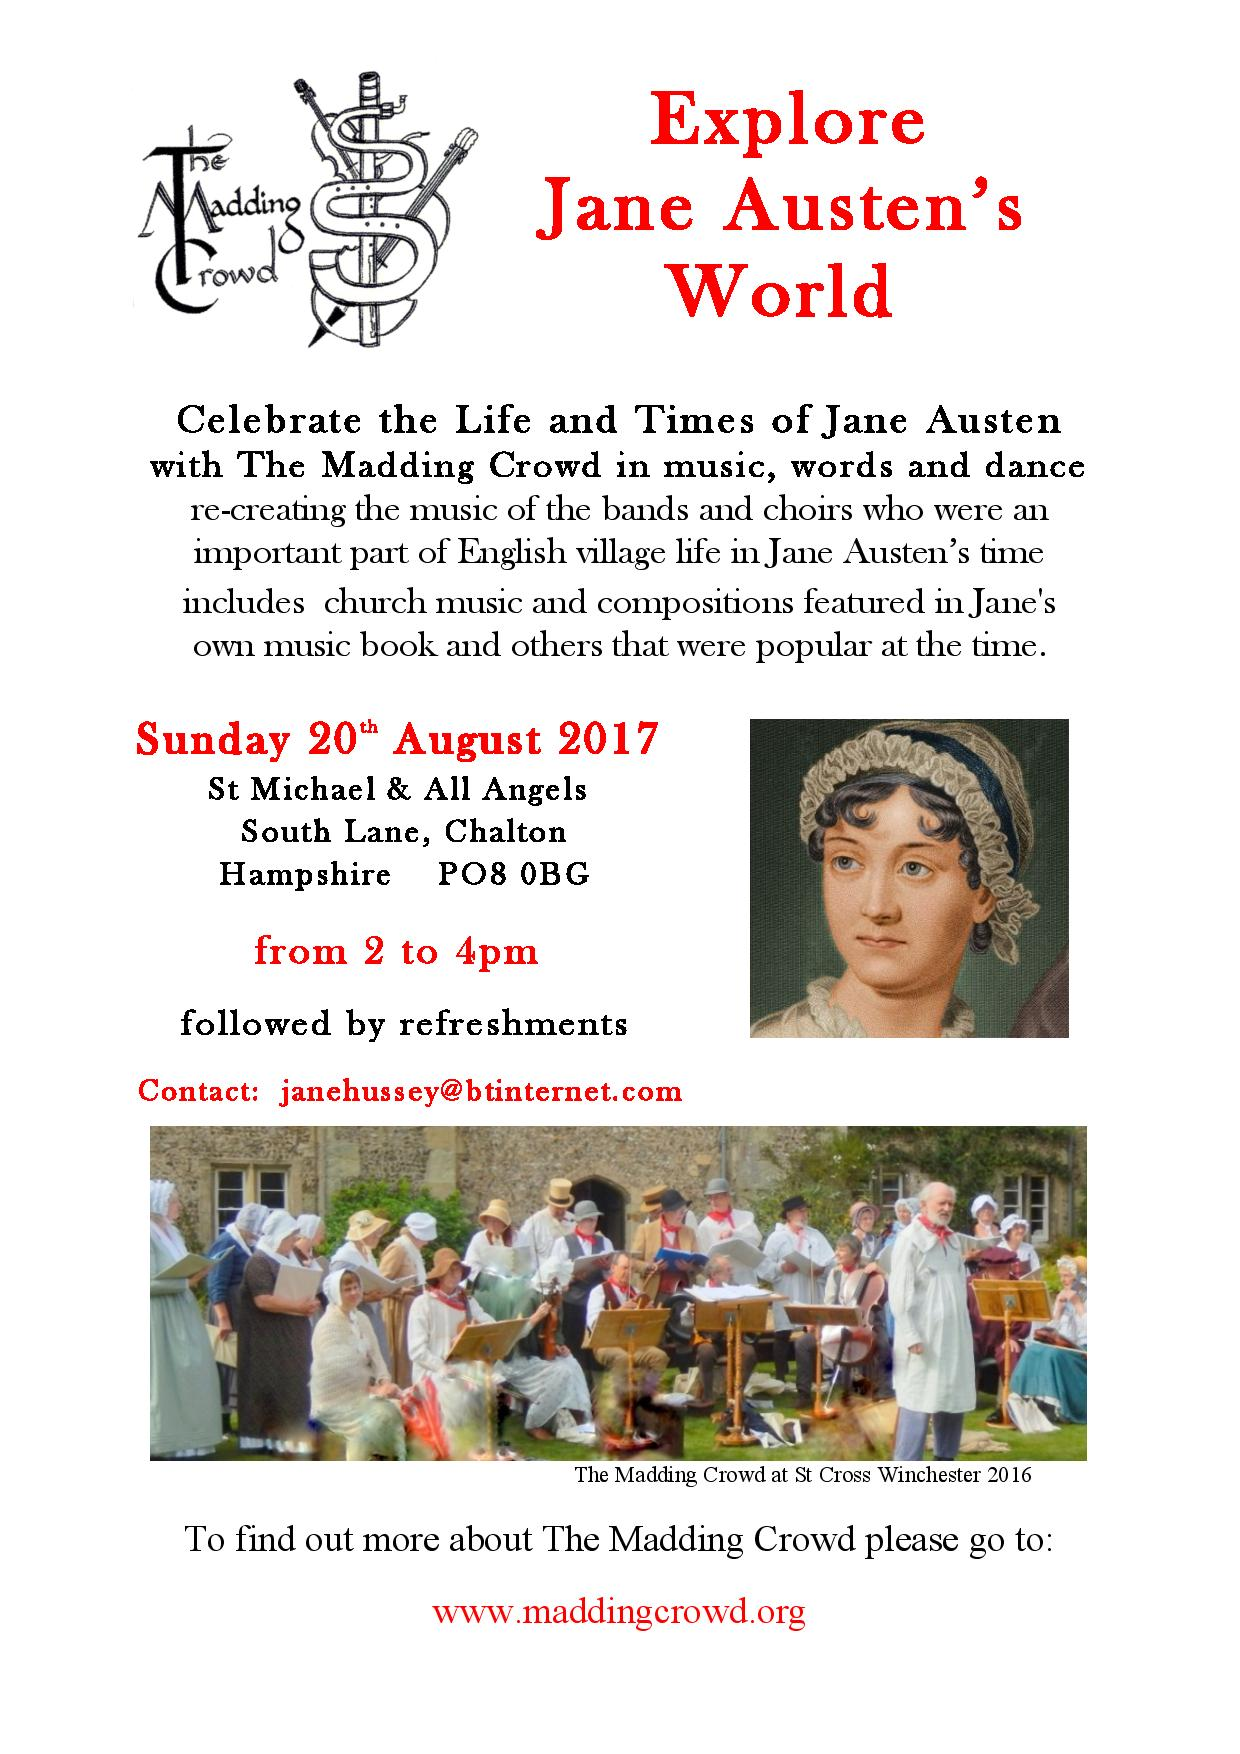 St Michael's Church, Celebrate the Life and Times of Jane Austen